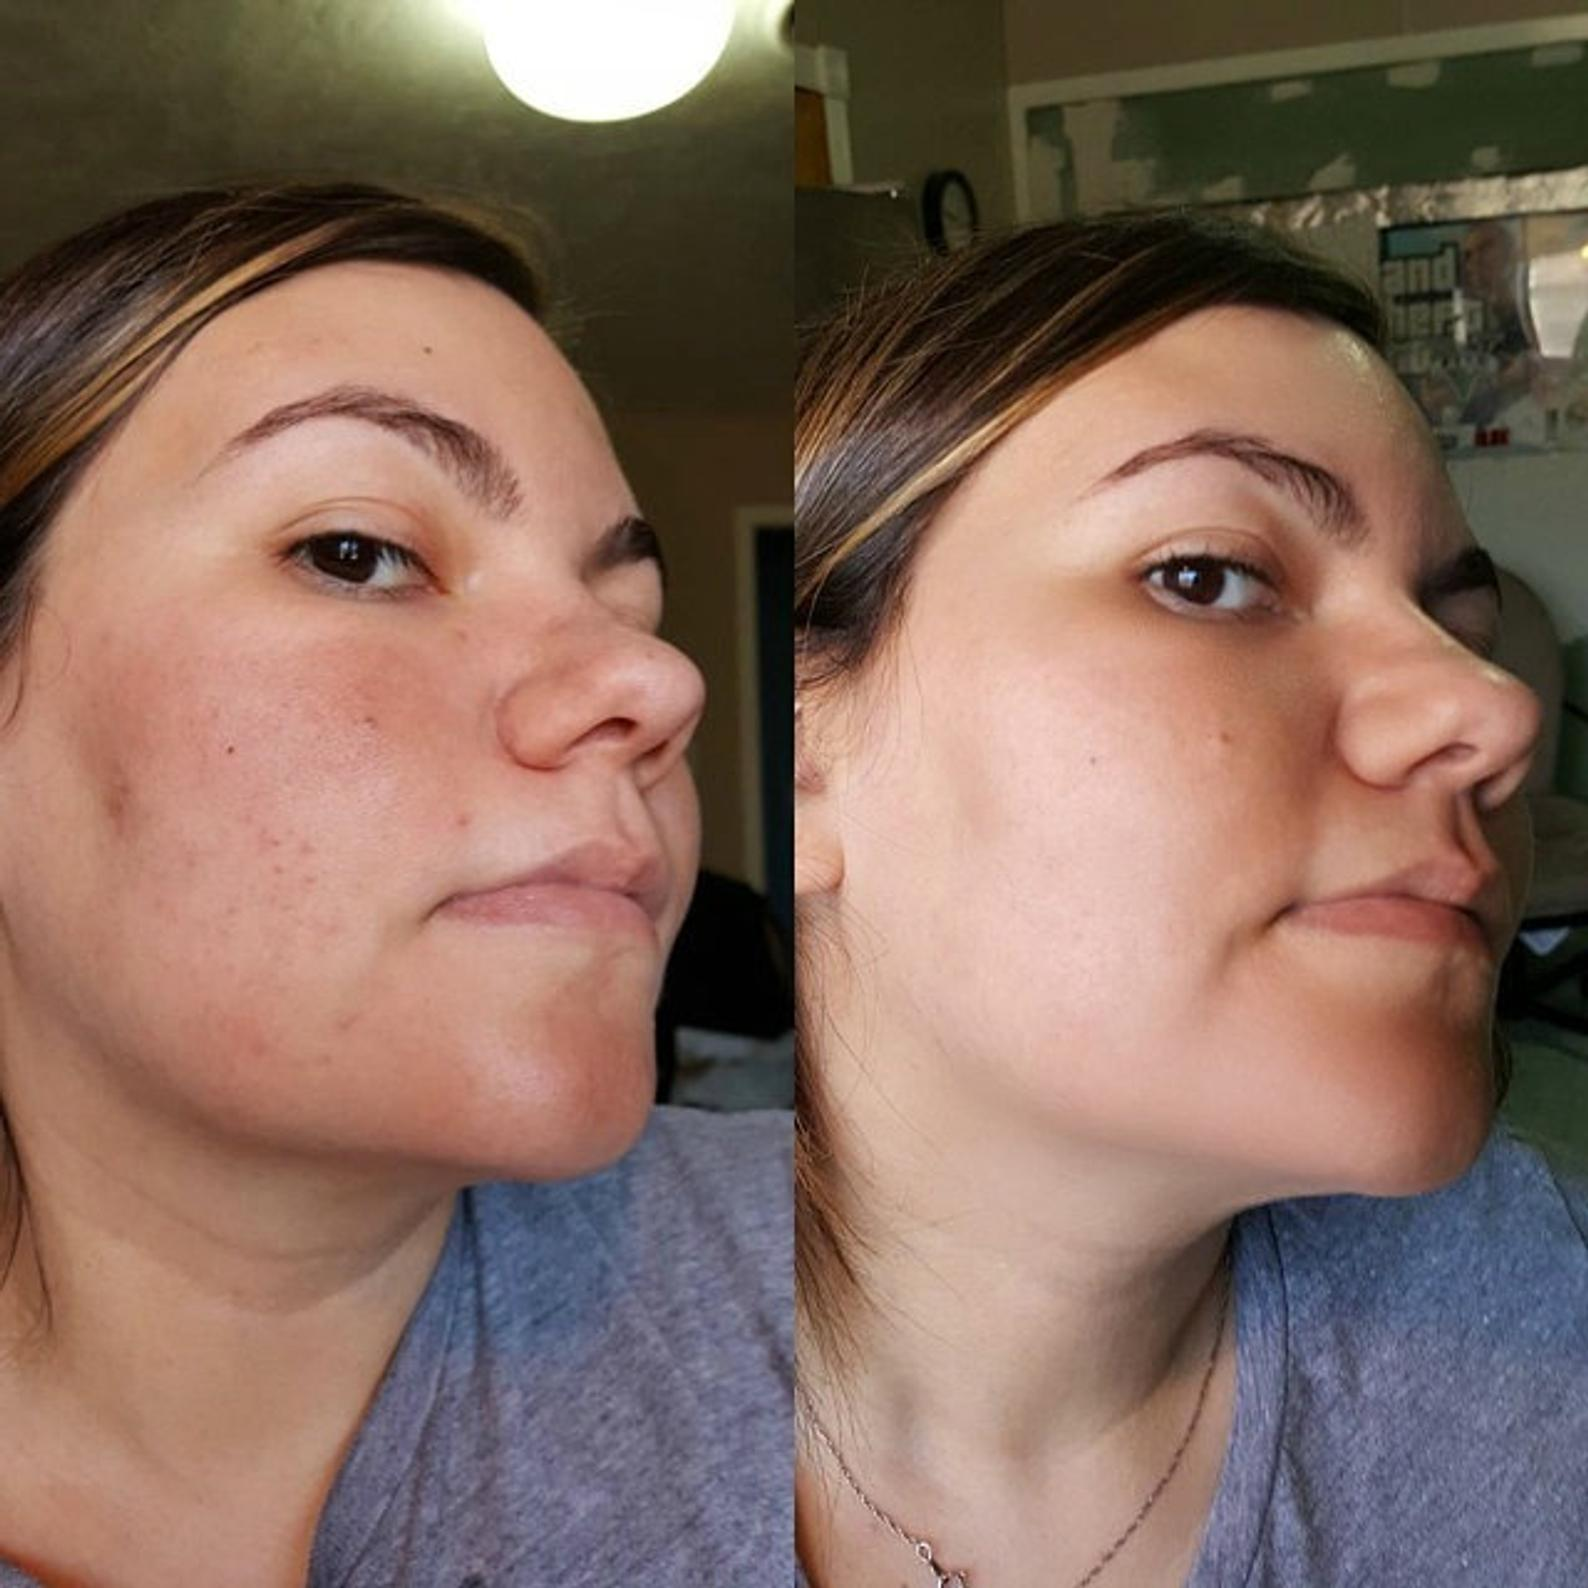 before and after of rosacea redness on females face from use of the MSM cream